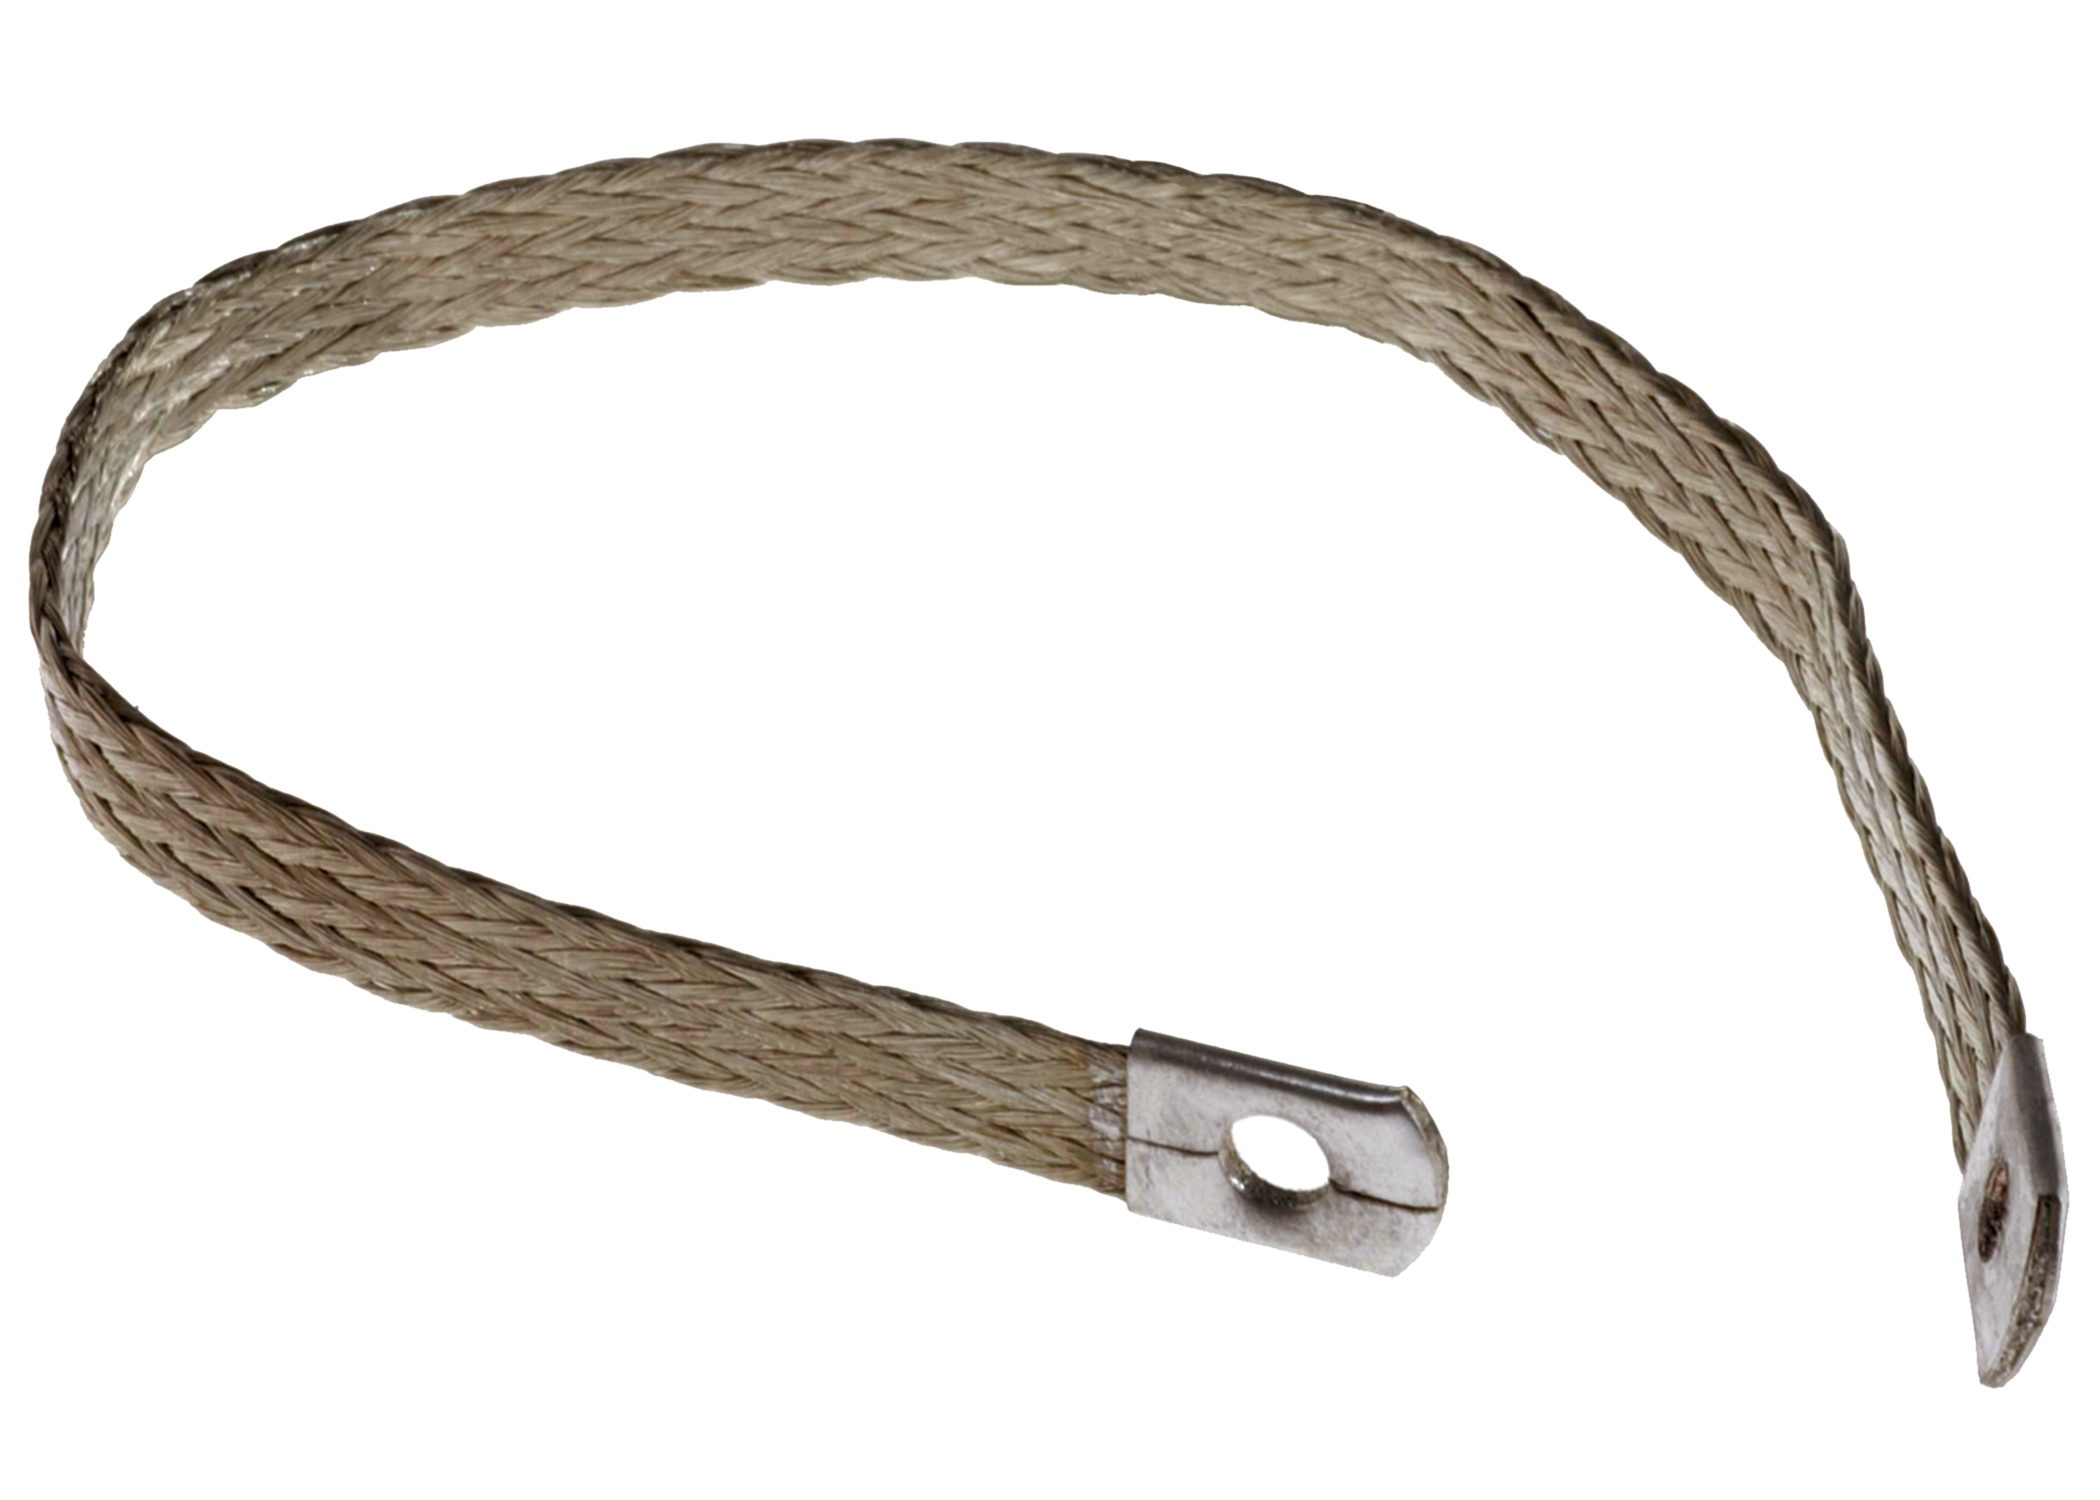 ACDELCO OE SERVICE - Body Electrical Ground Strap - DCB EG18TK